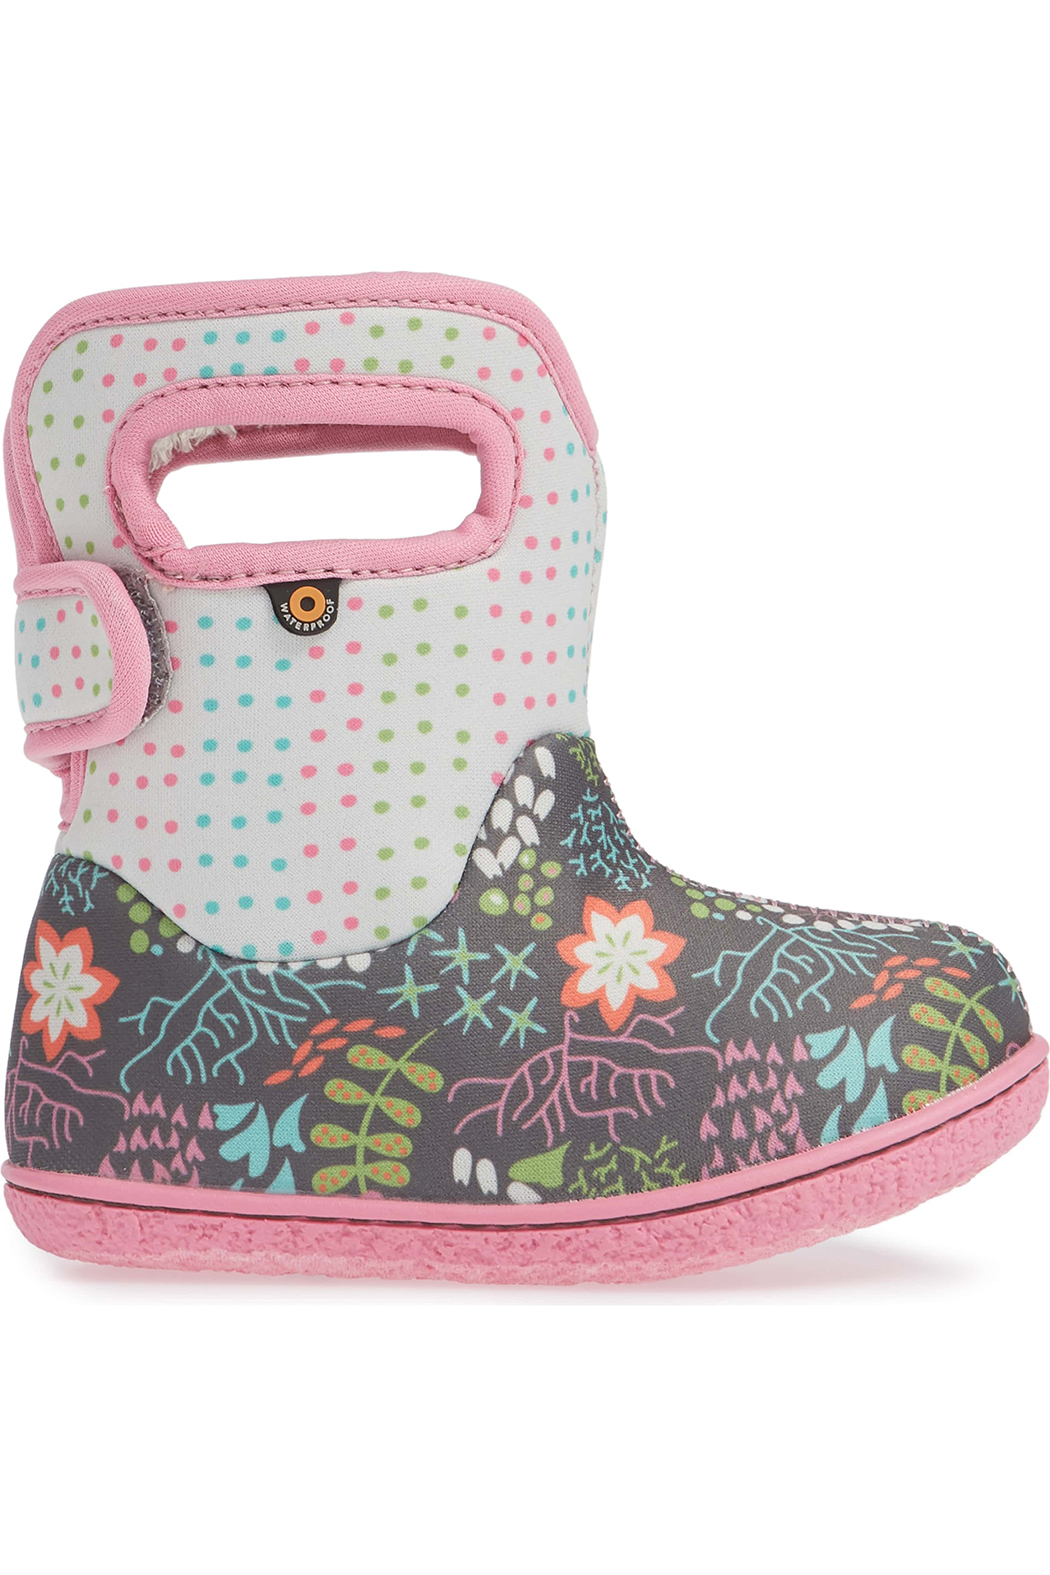 BOGS Baby Bogs Gray Flower Dot Waterproof Boot - Main Image